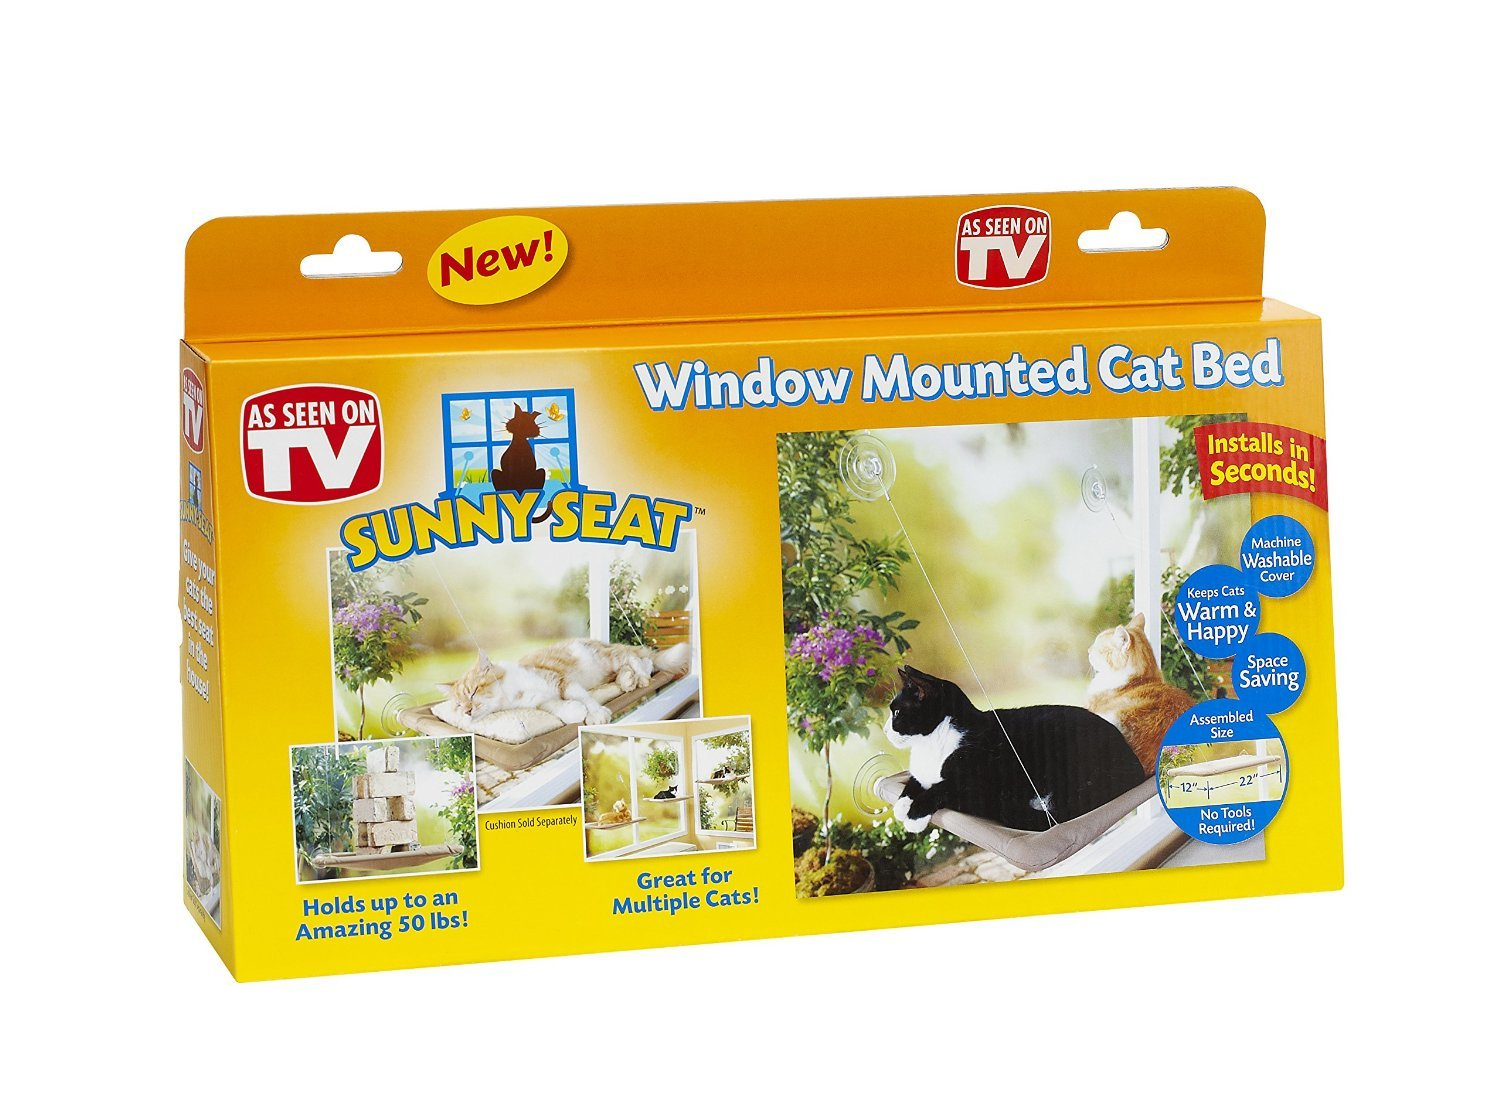 Marvelous Sunny Seat Cat Window Bed For Cats Review Cattime Andrewgaddart Wooden Chair Designs For Living Room Andrewgaddartcom